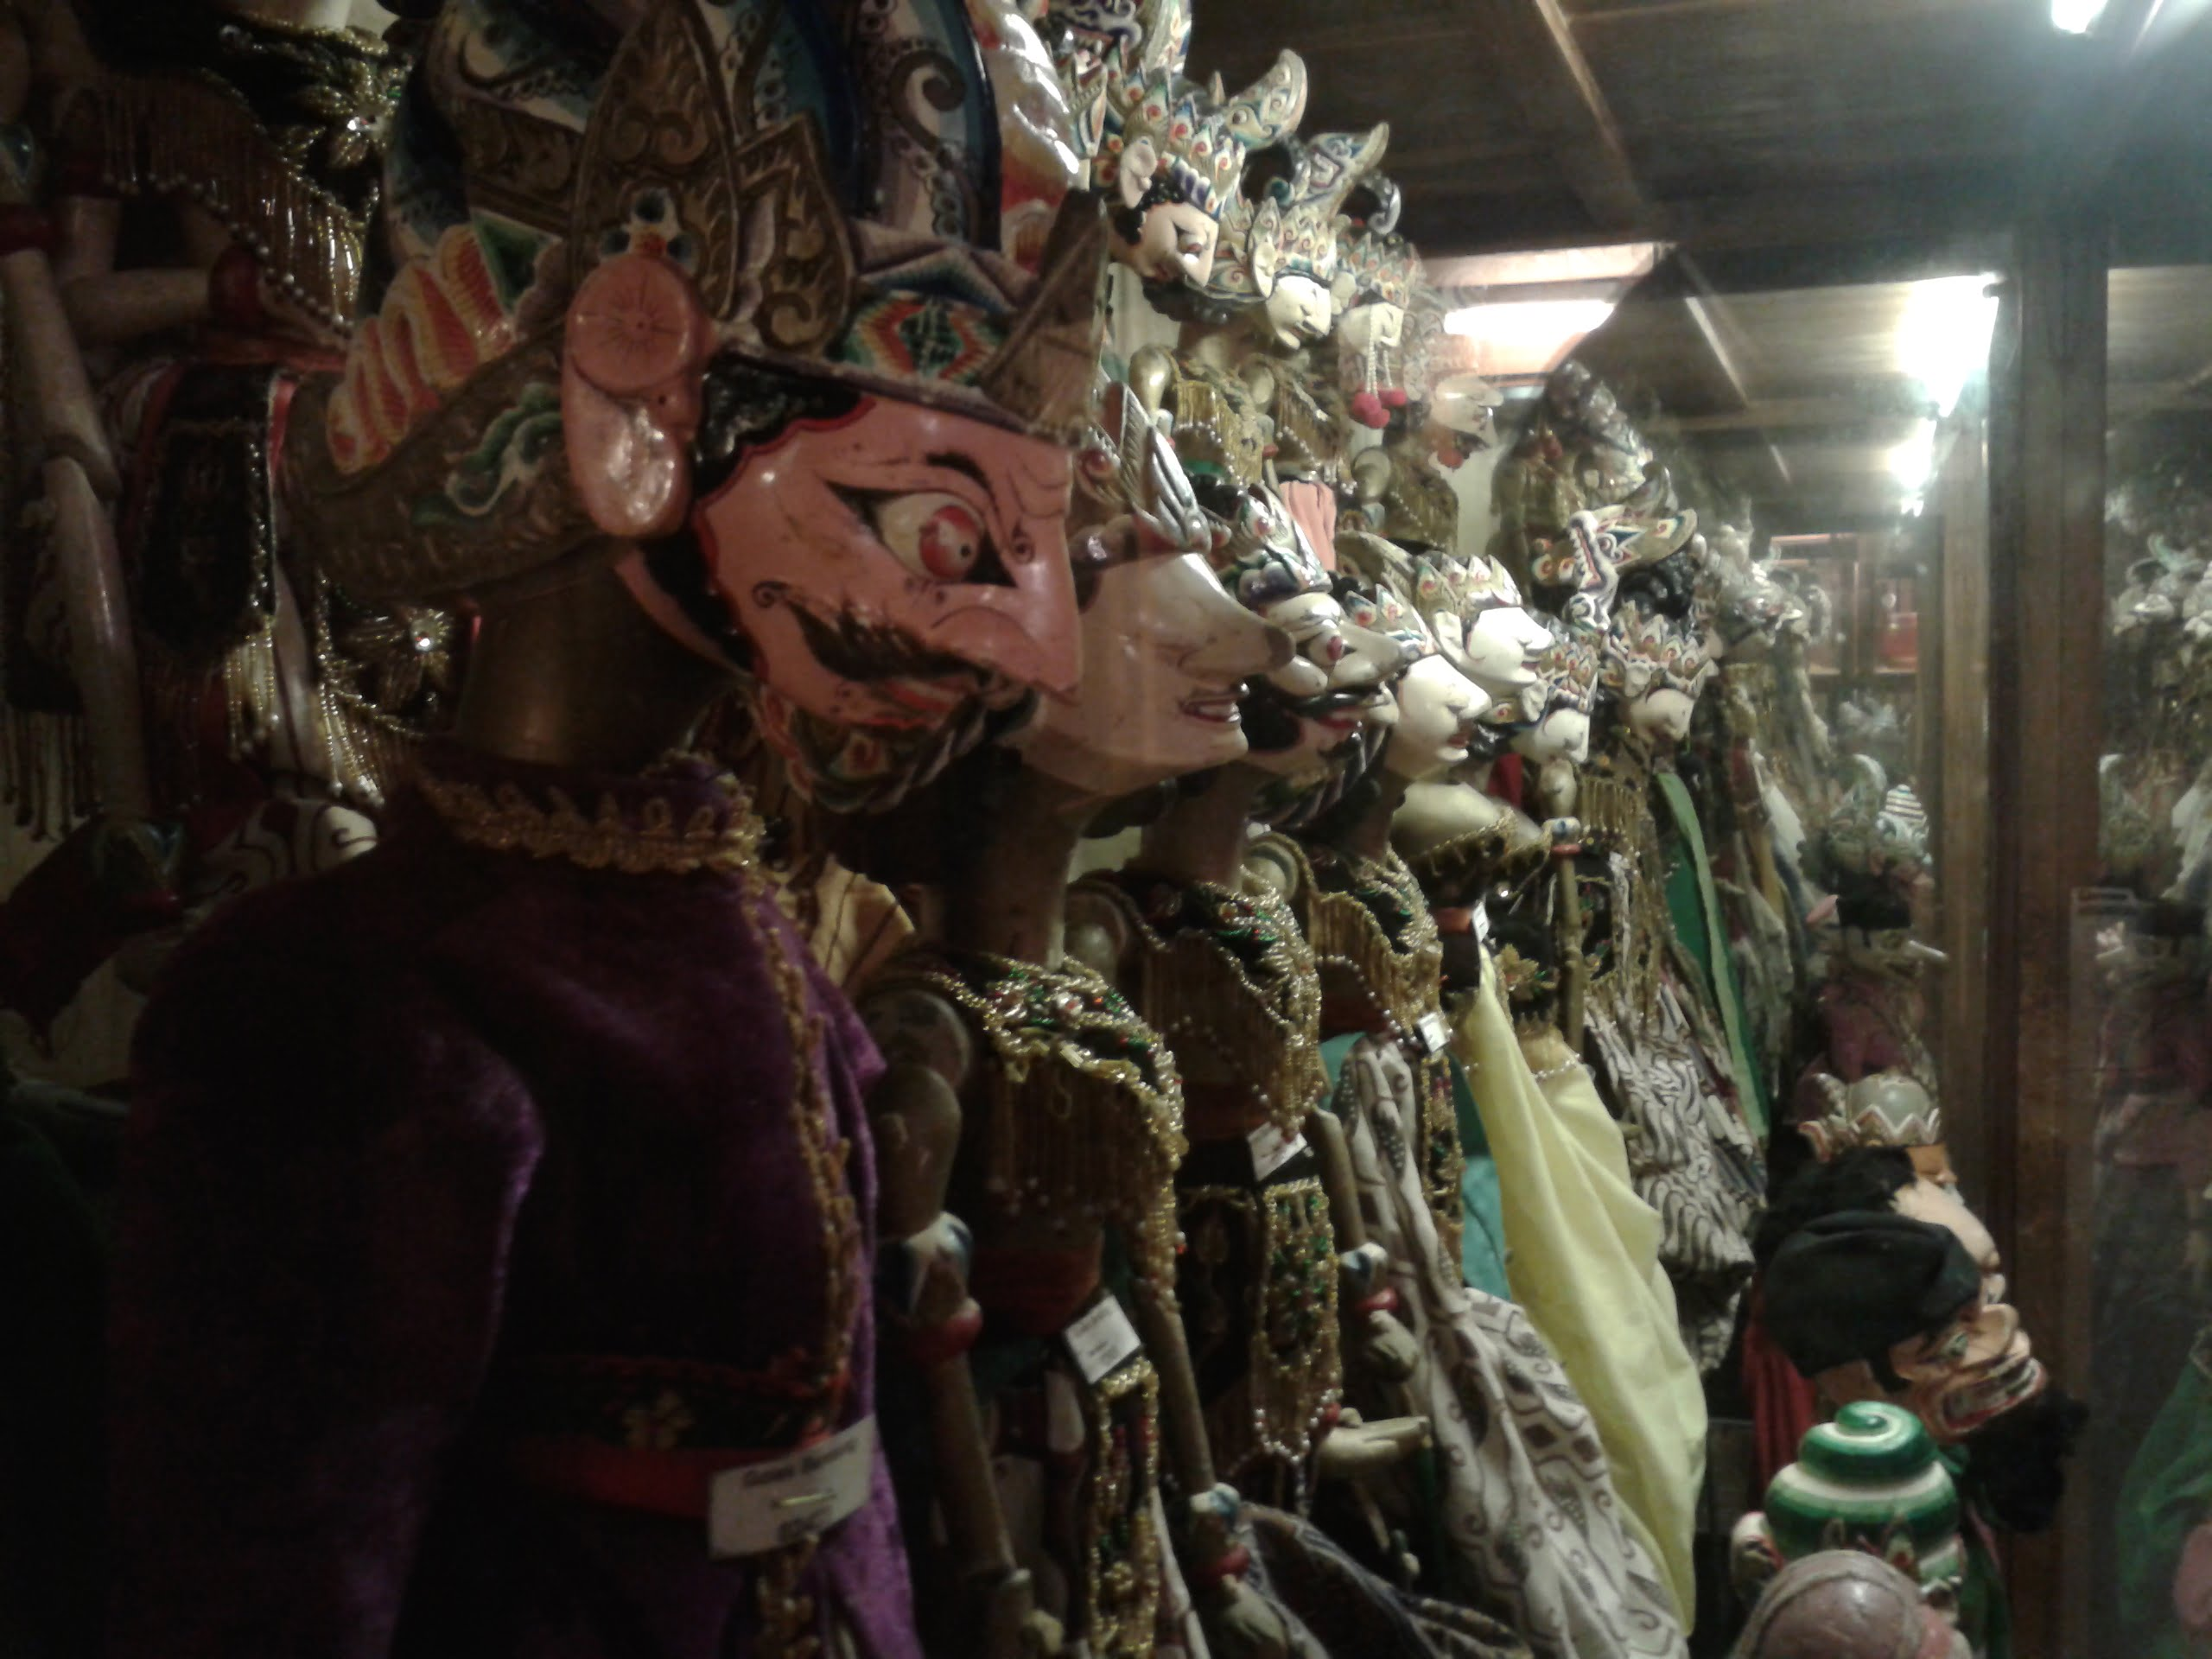 Mampir ke Setia Darma House of Mask and Puppets